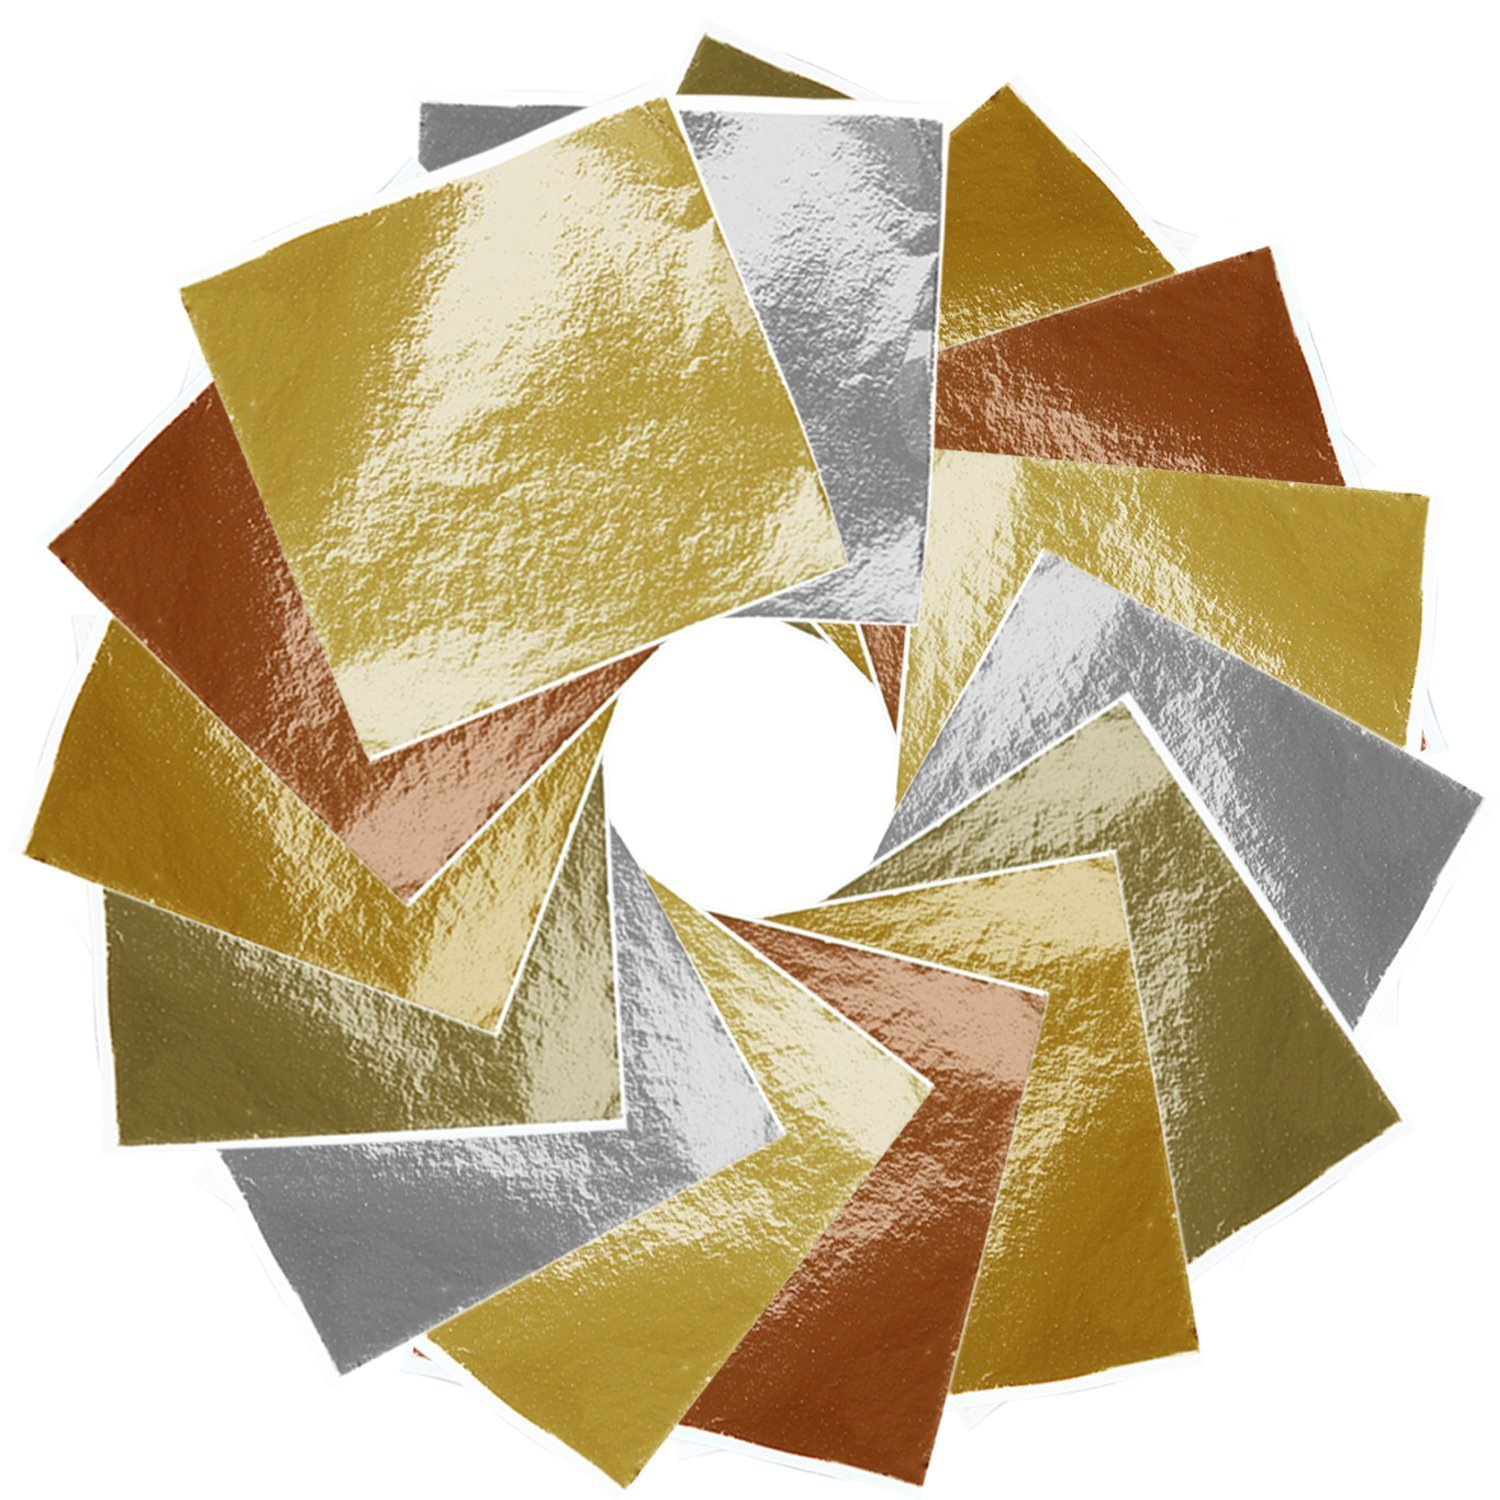 Aneco 475 Sheets Imitation Gold Leaf Foil Paper for Arts, Gilding Crafting, Decoration, Furniture, 5 Colors,3.54by 3.54 inches 4336855692